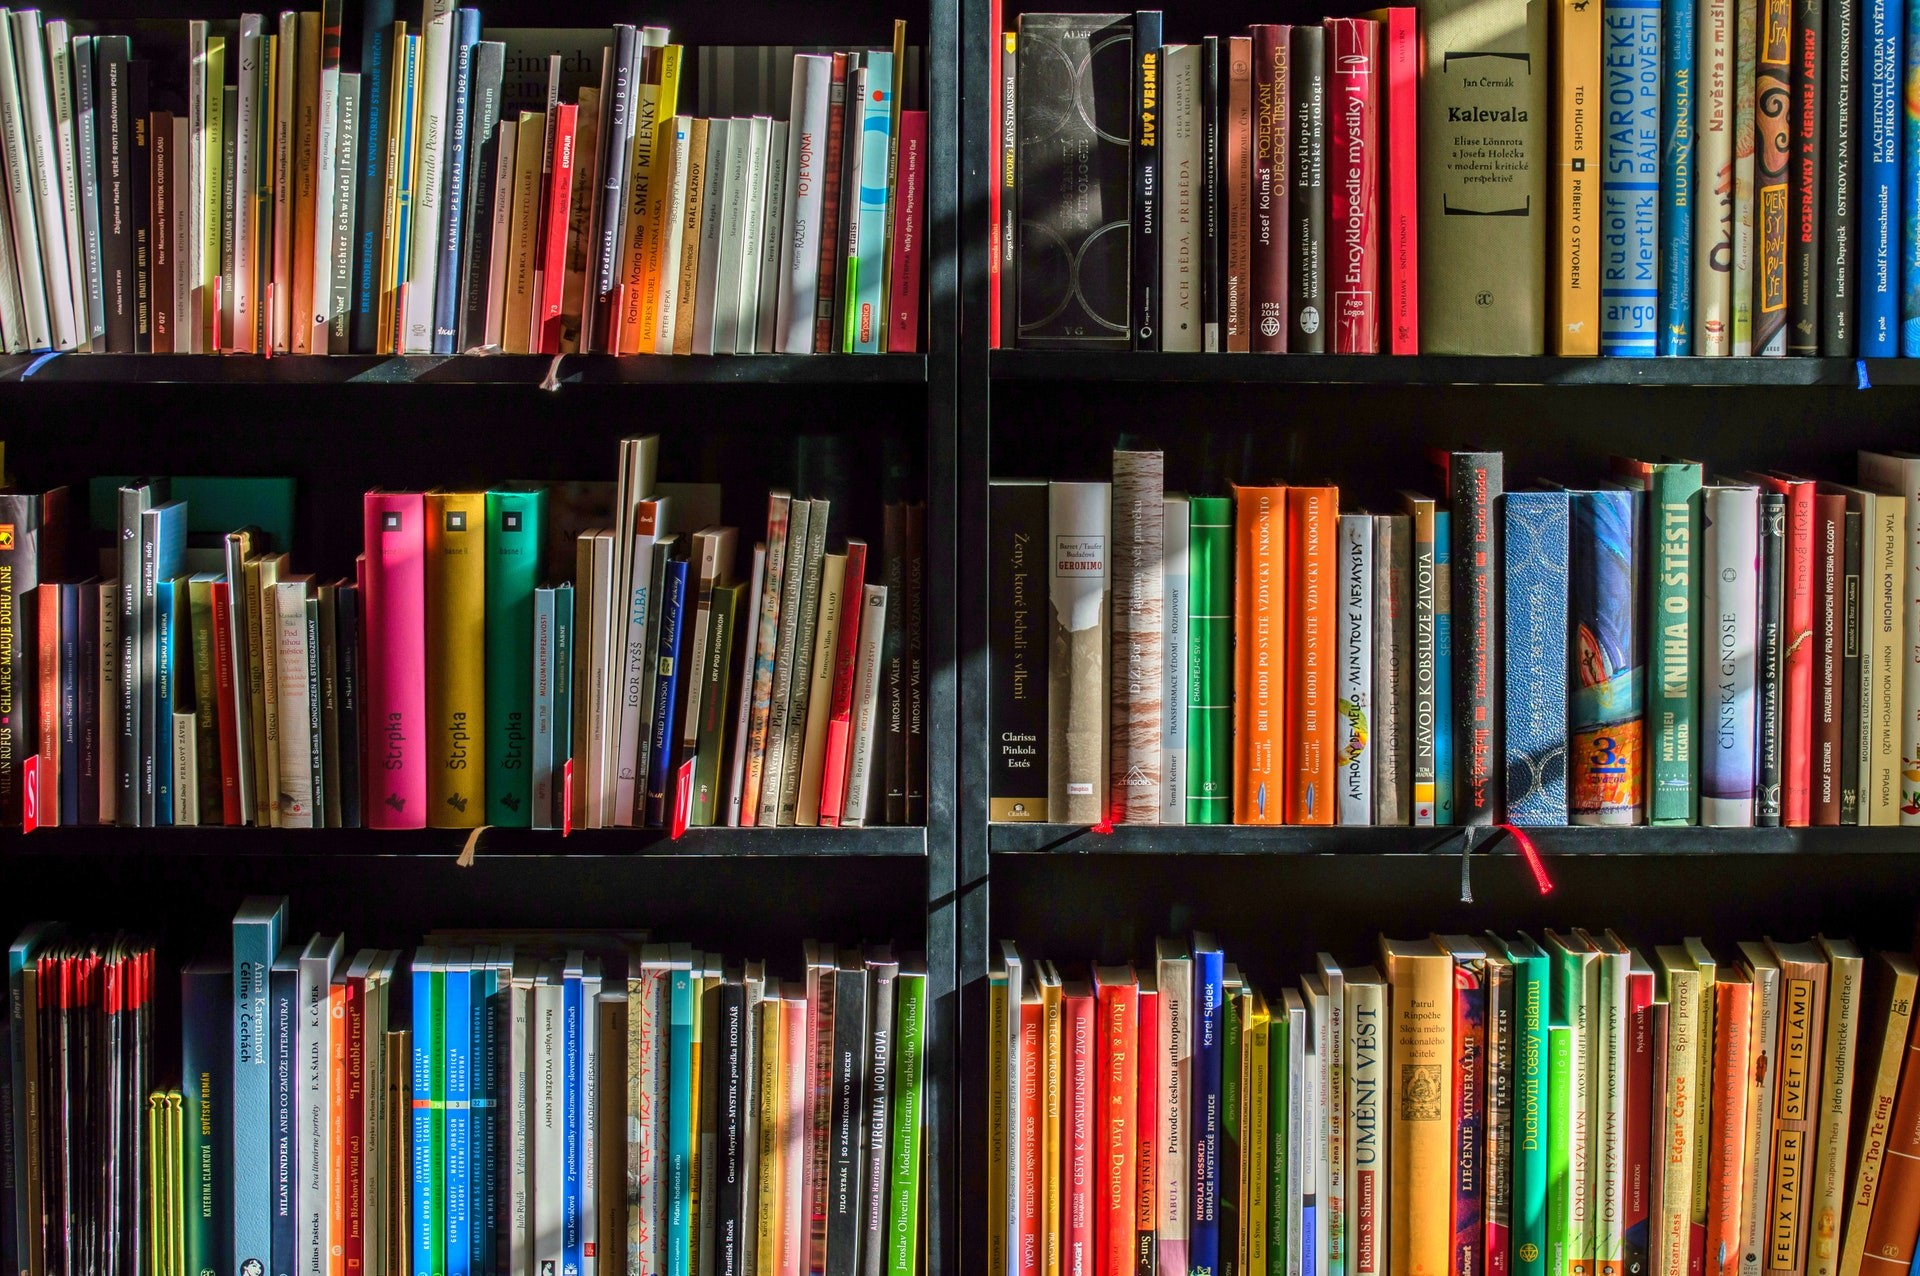 Library bookshelf filled with colorful books